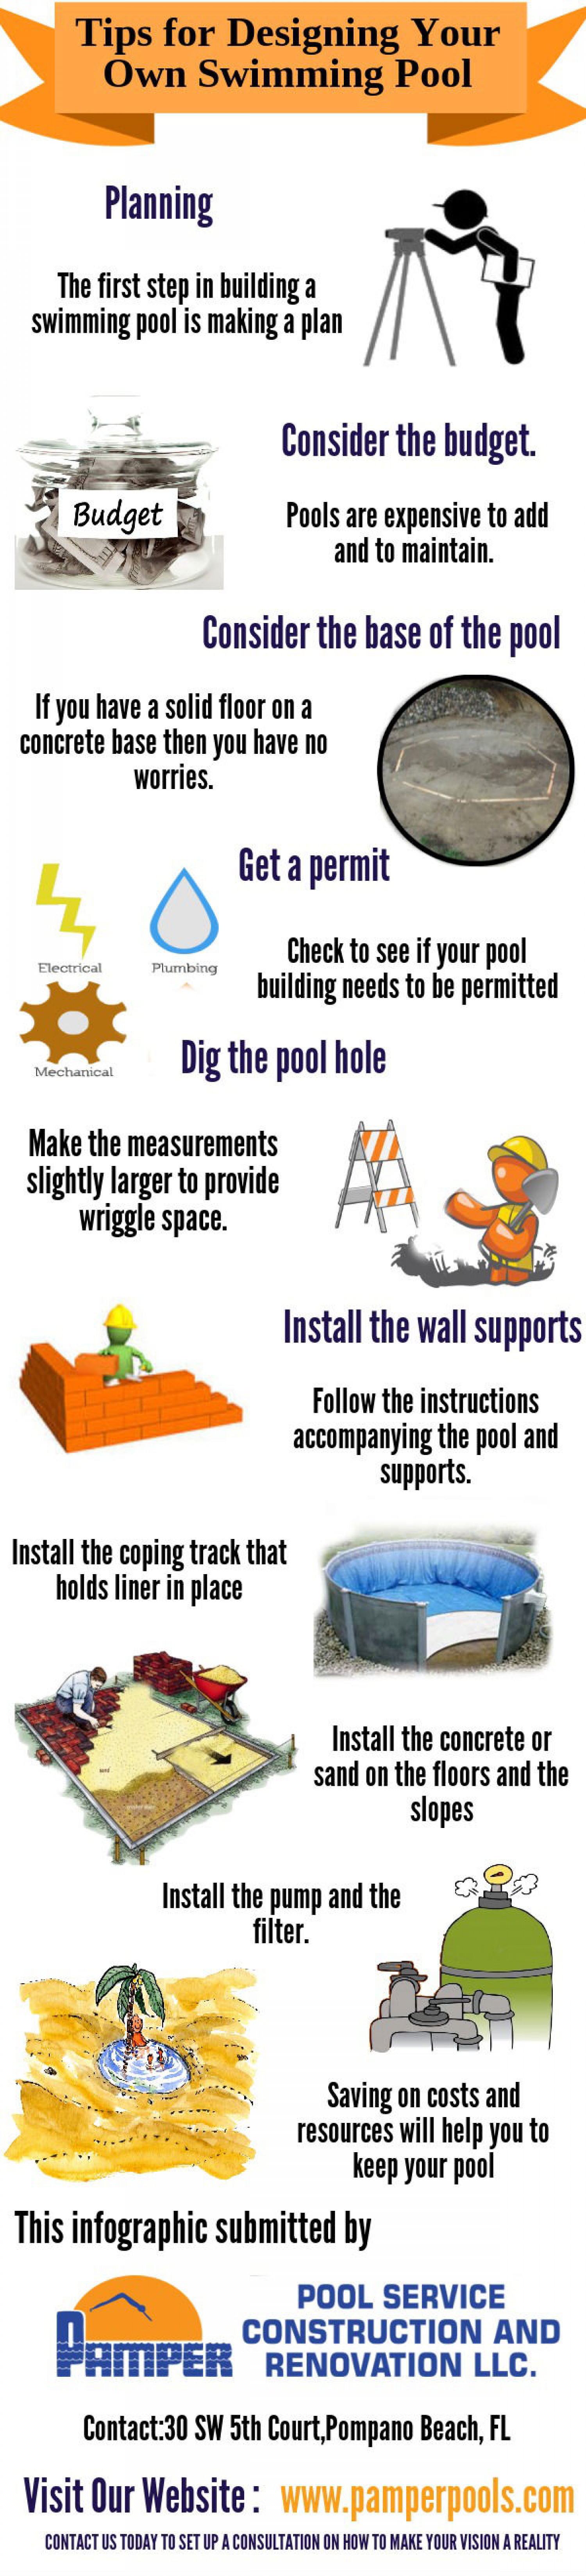 Tips for Designing Your Own Swimming Pool